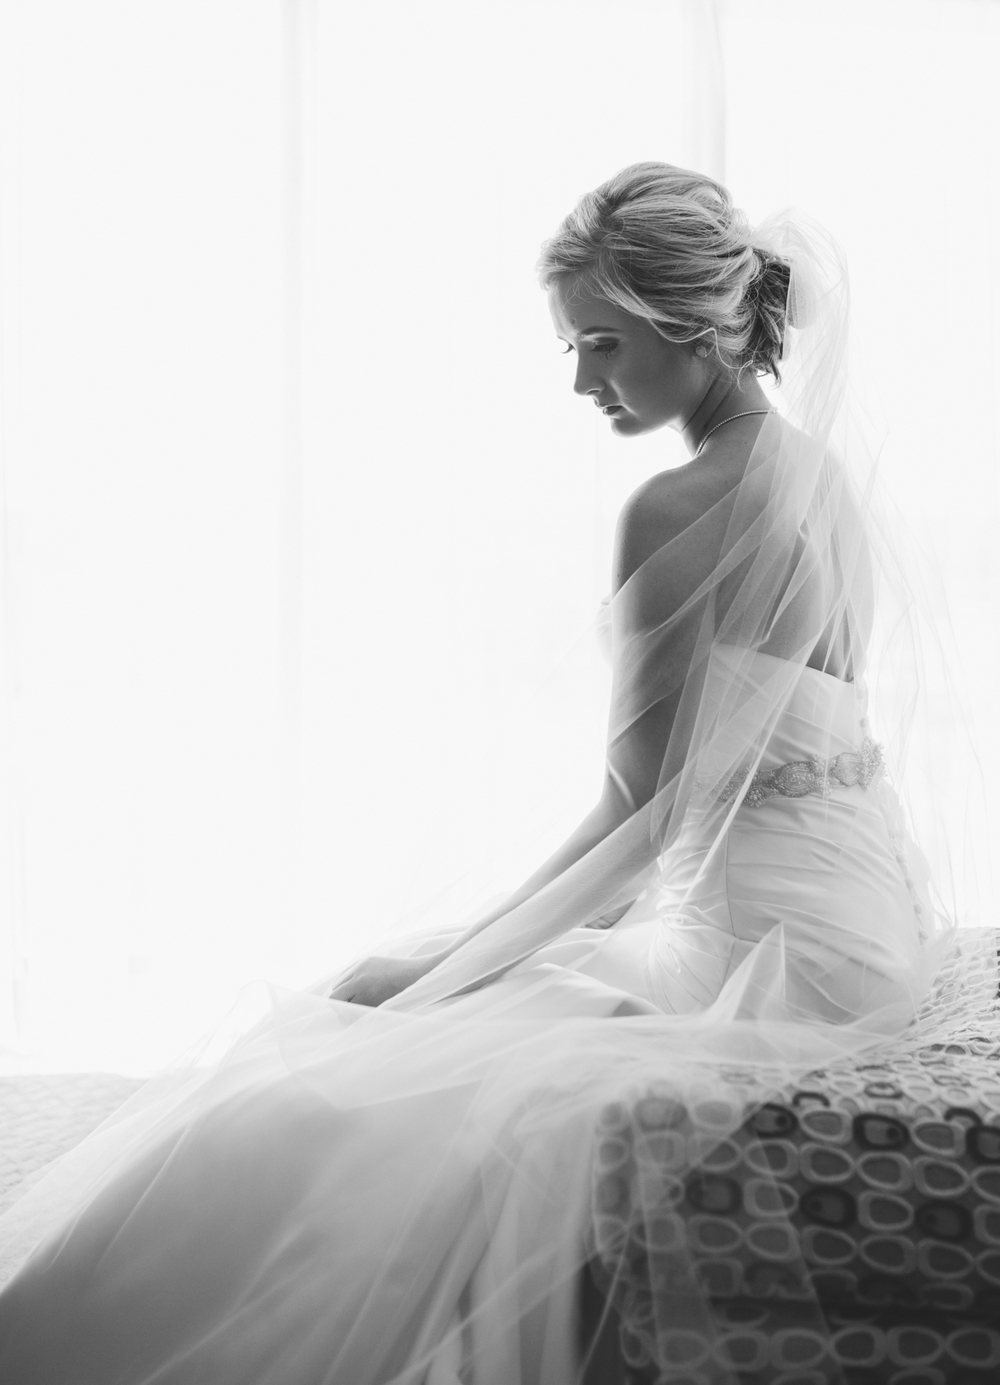 Beautiful bride in front of window looking down in black and white